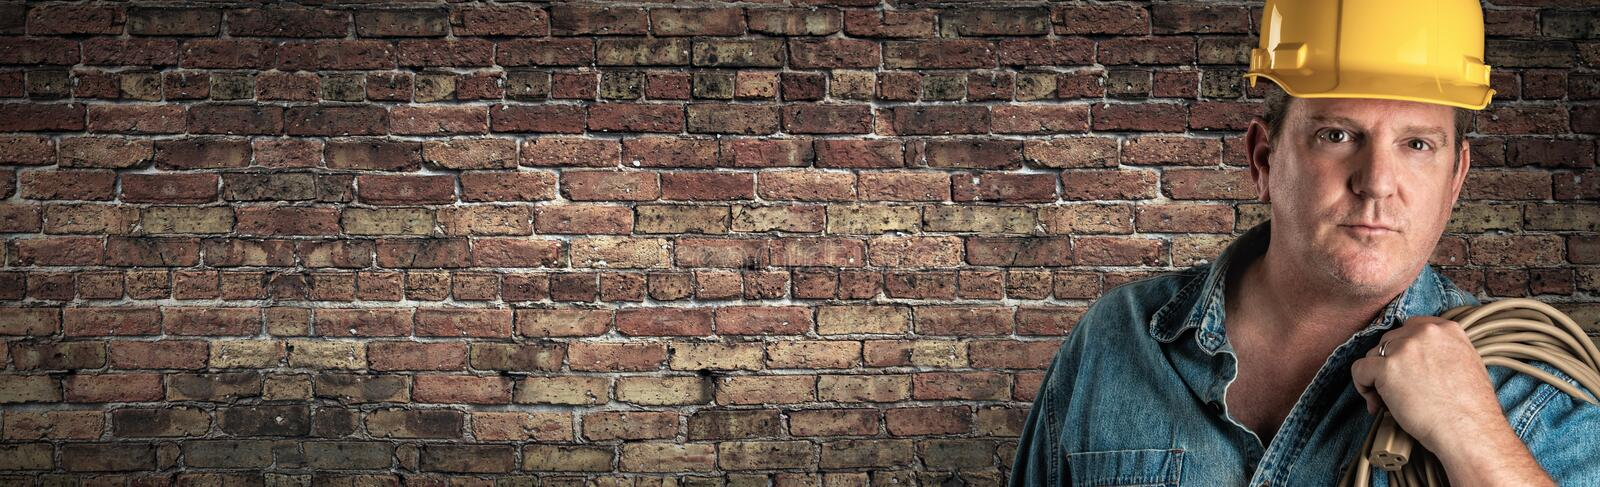 Male Contractor In Hard Hat Holding Cable In Front Of Old Brick Wall Banner with Copy Space.  stock images